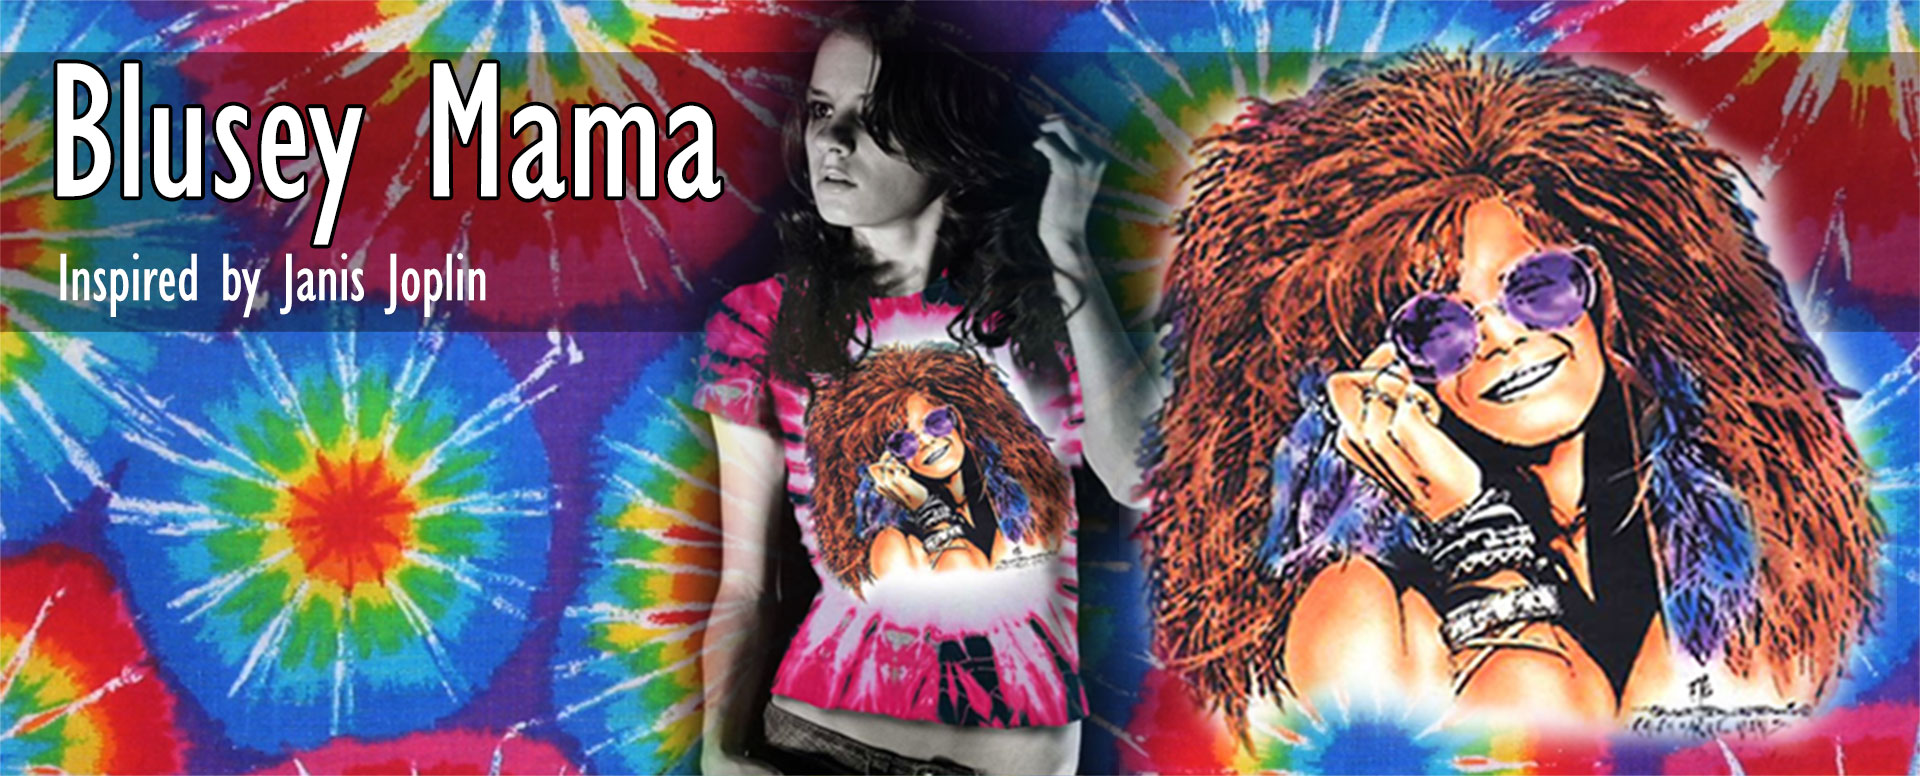 Bluesy Mama and Dune Shirts Inspired by Janis Joplin - T-shirts and Tank Tops